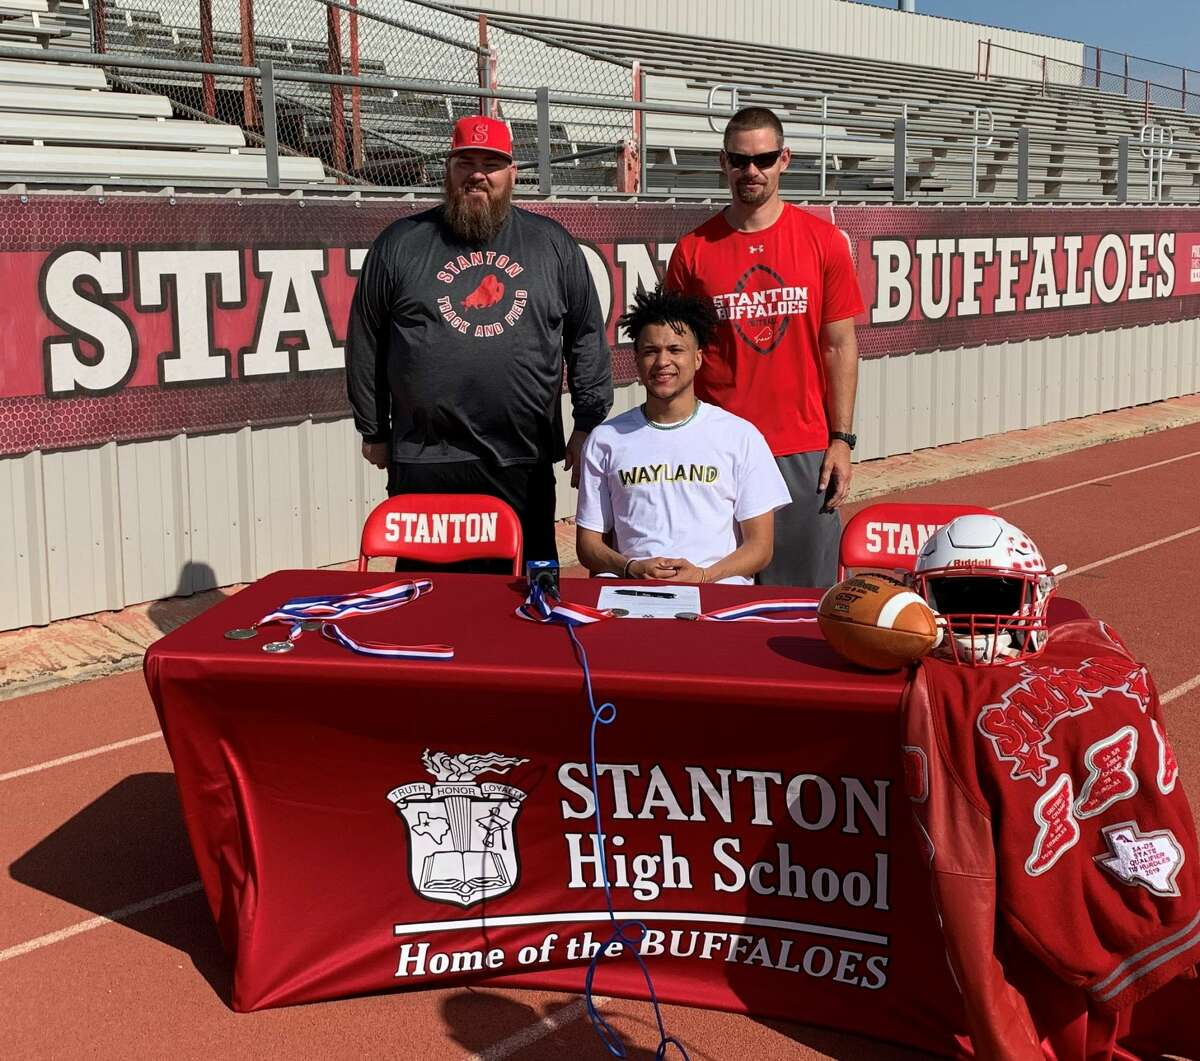 Stanton High School athlete Devan Simpson (seated) signs commits to Wayland Baptist University to play football and run track. Stanton track coach Graden Long, left, and Stanton football coach Cody Hogan, right, join him at Buffalo Stadium on Thursday.